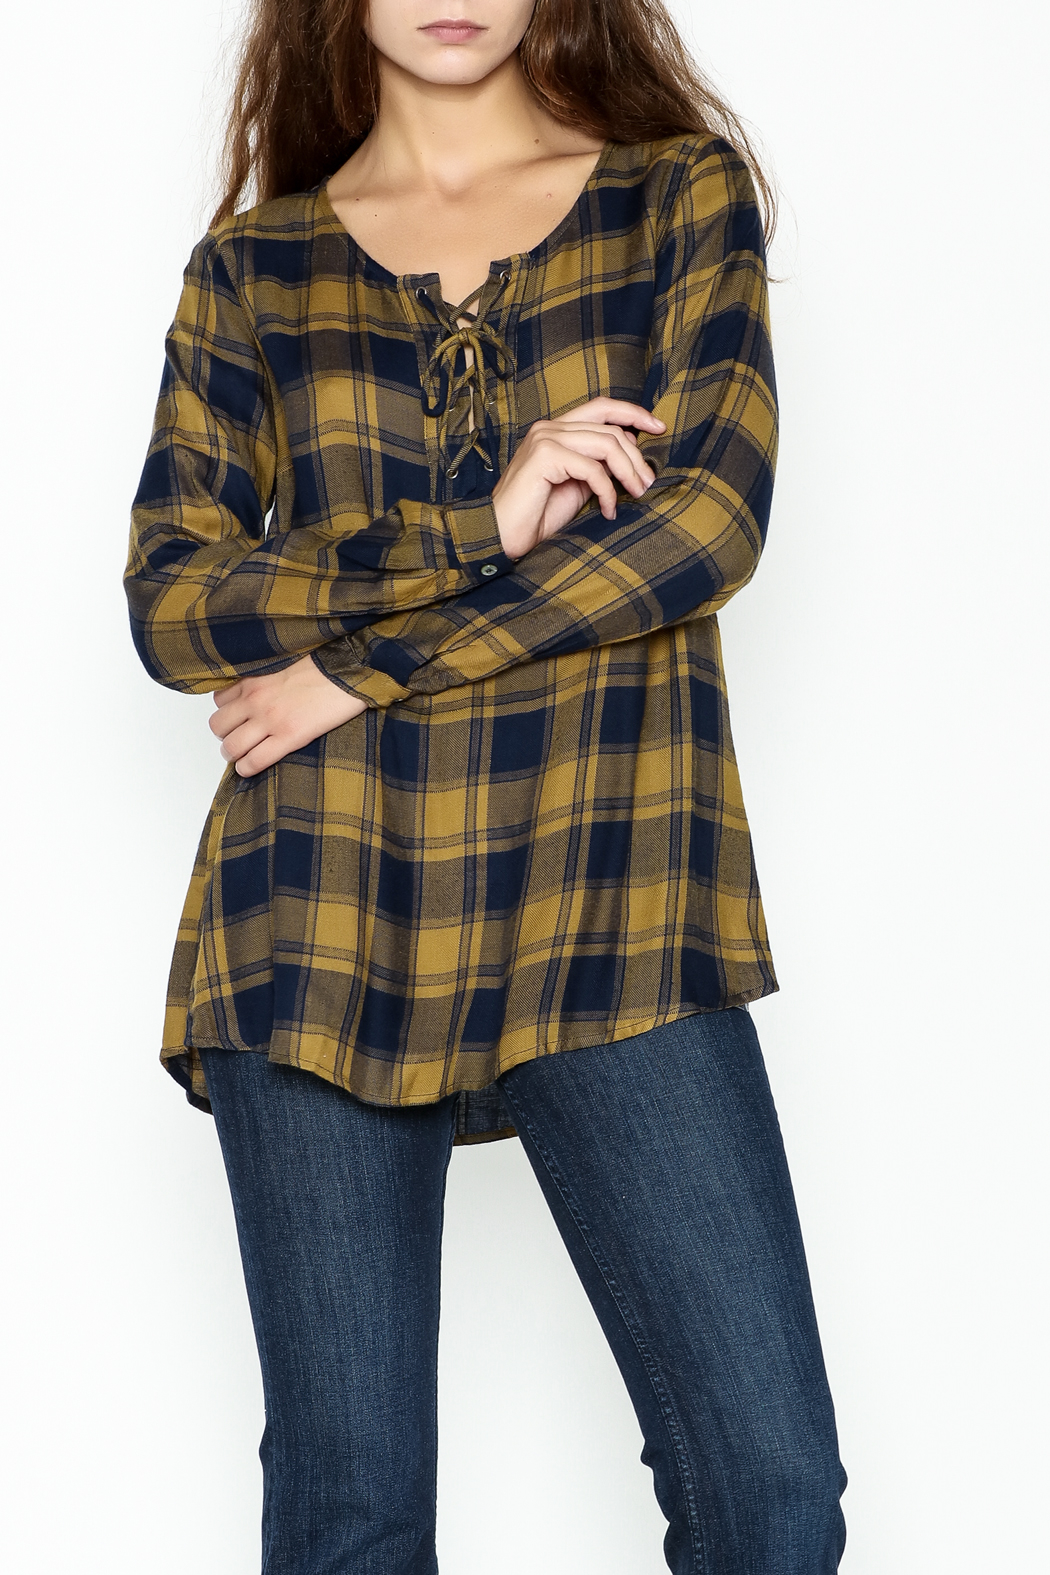 Mystree Lace Up Plaid Top - Main Image